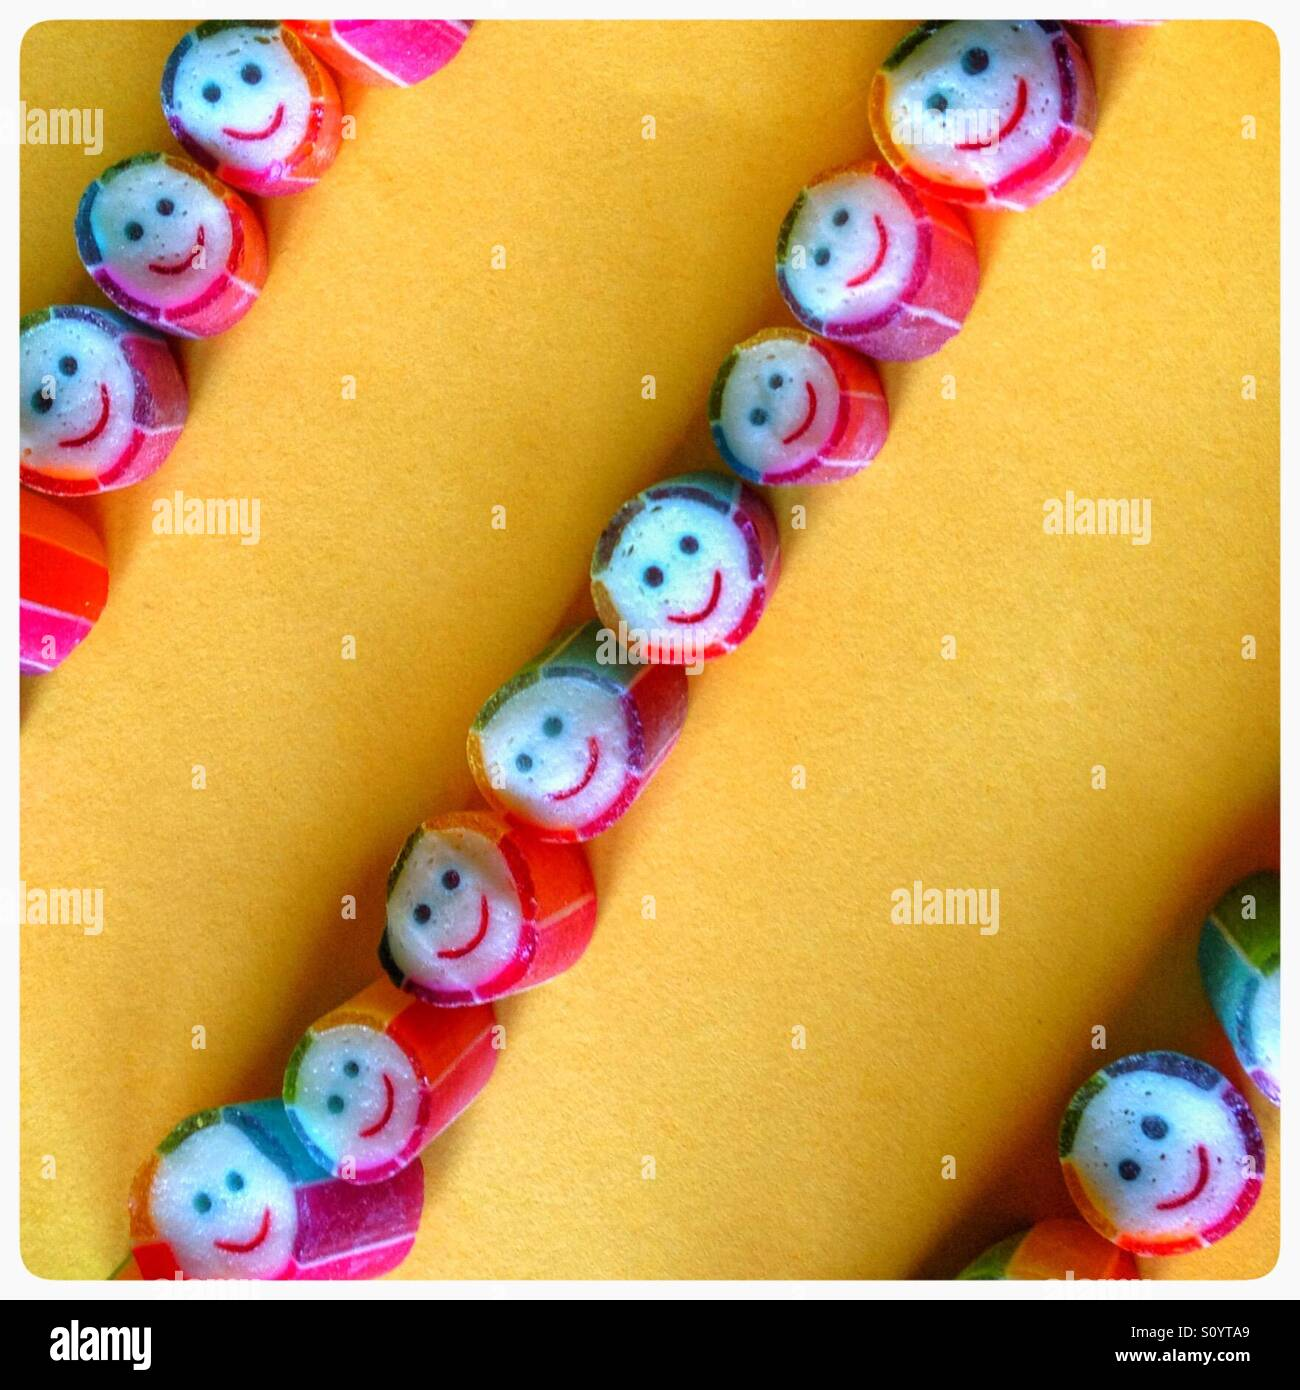 Lignes de smiling faces Photo Stock